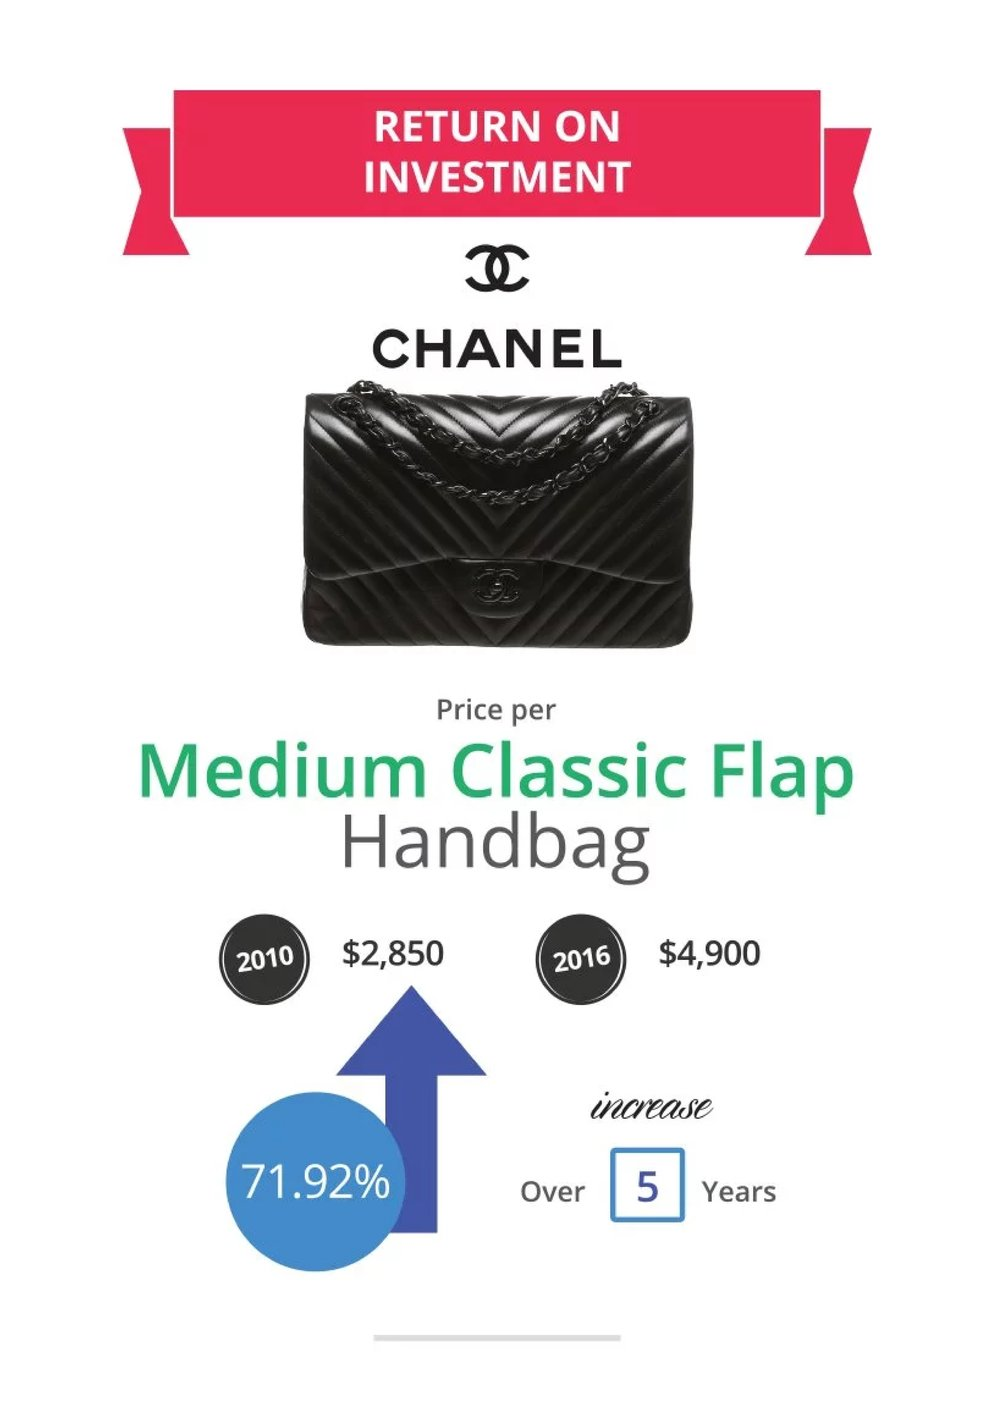 Chanel Bag Values Research Study _ Baghunter6.jpg